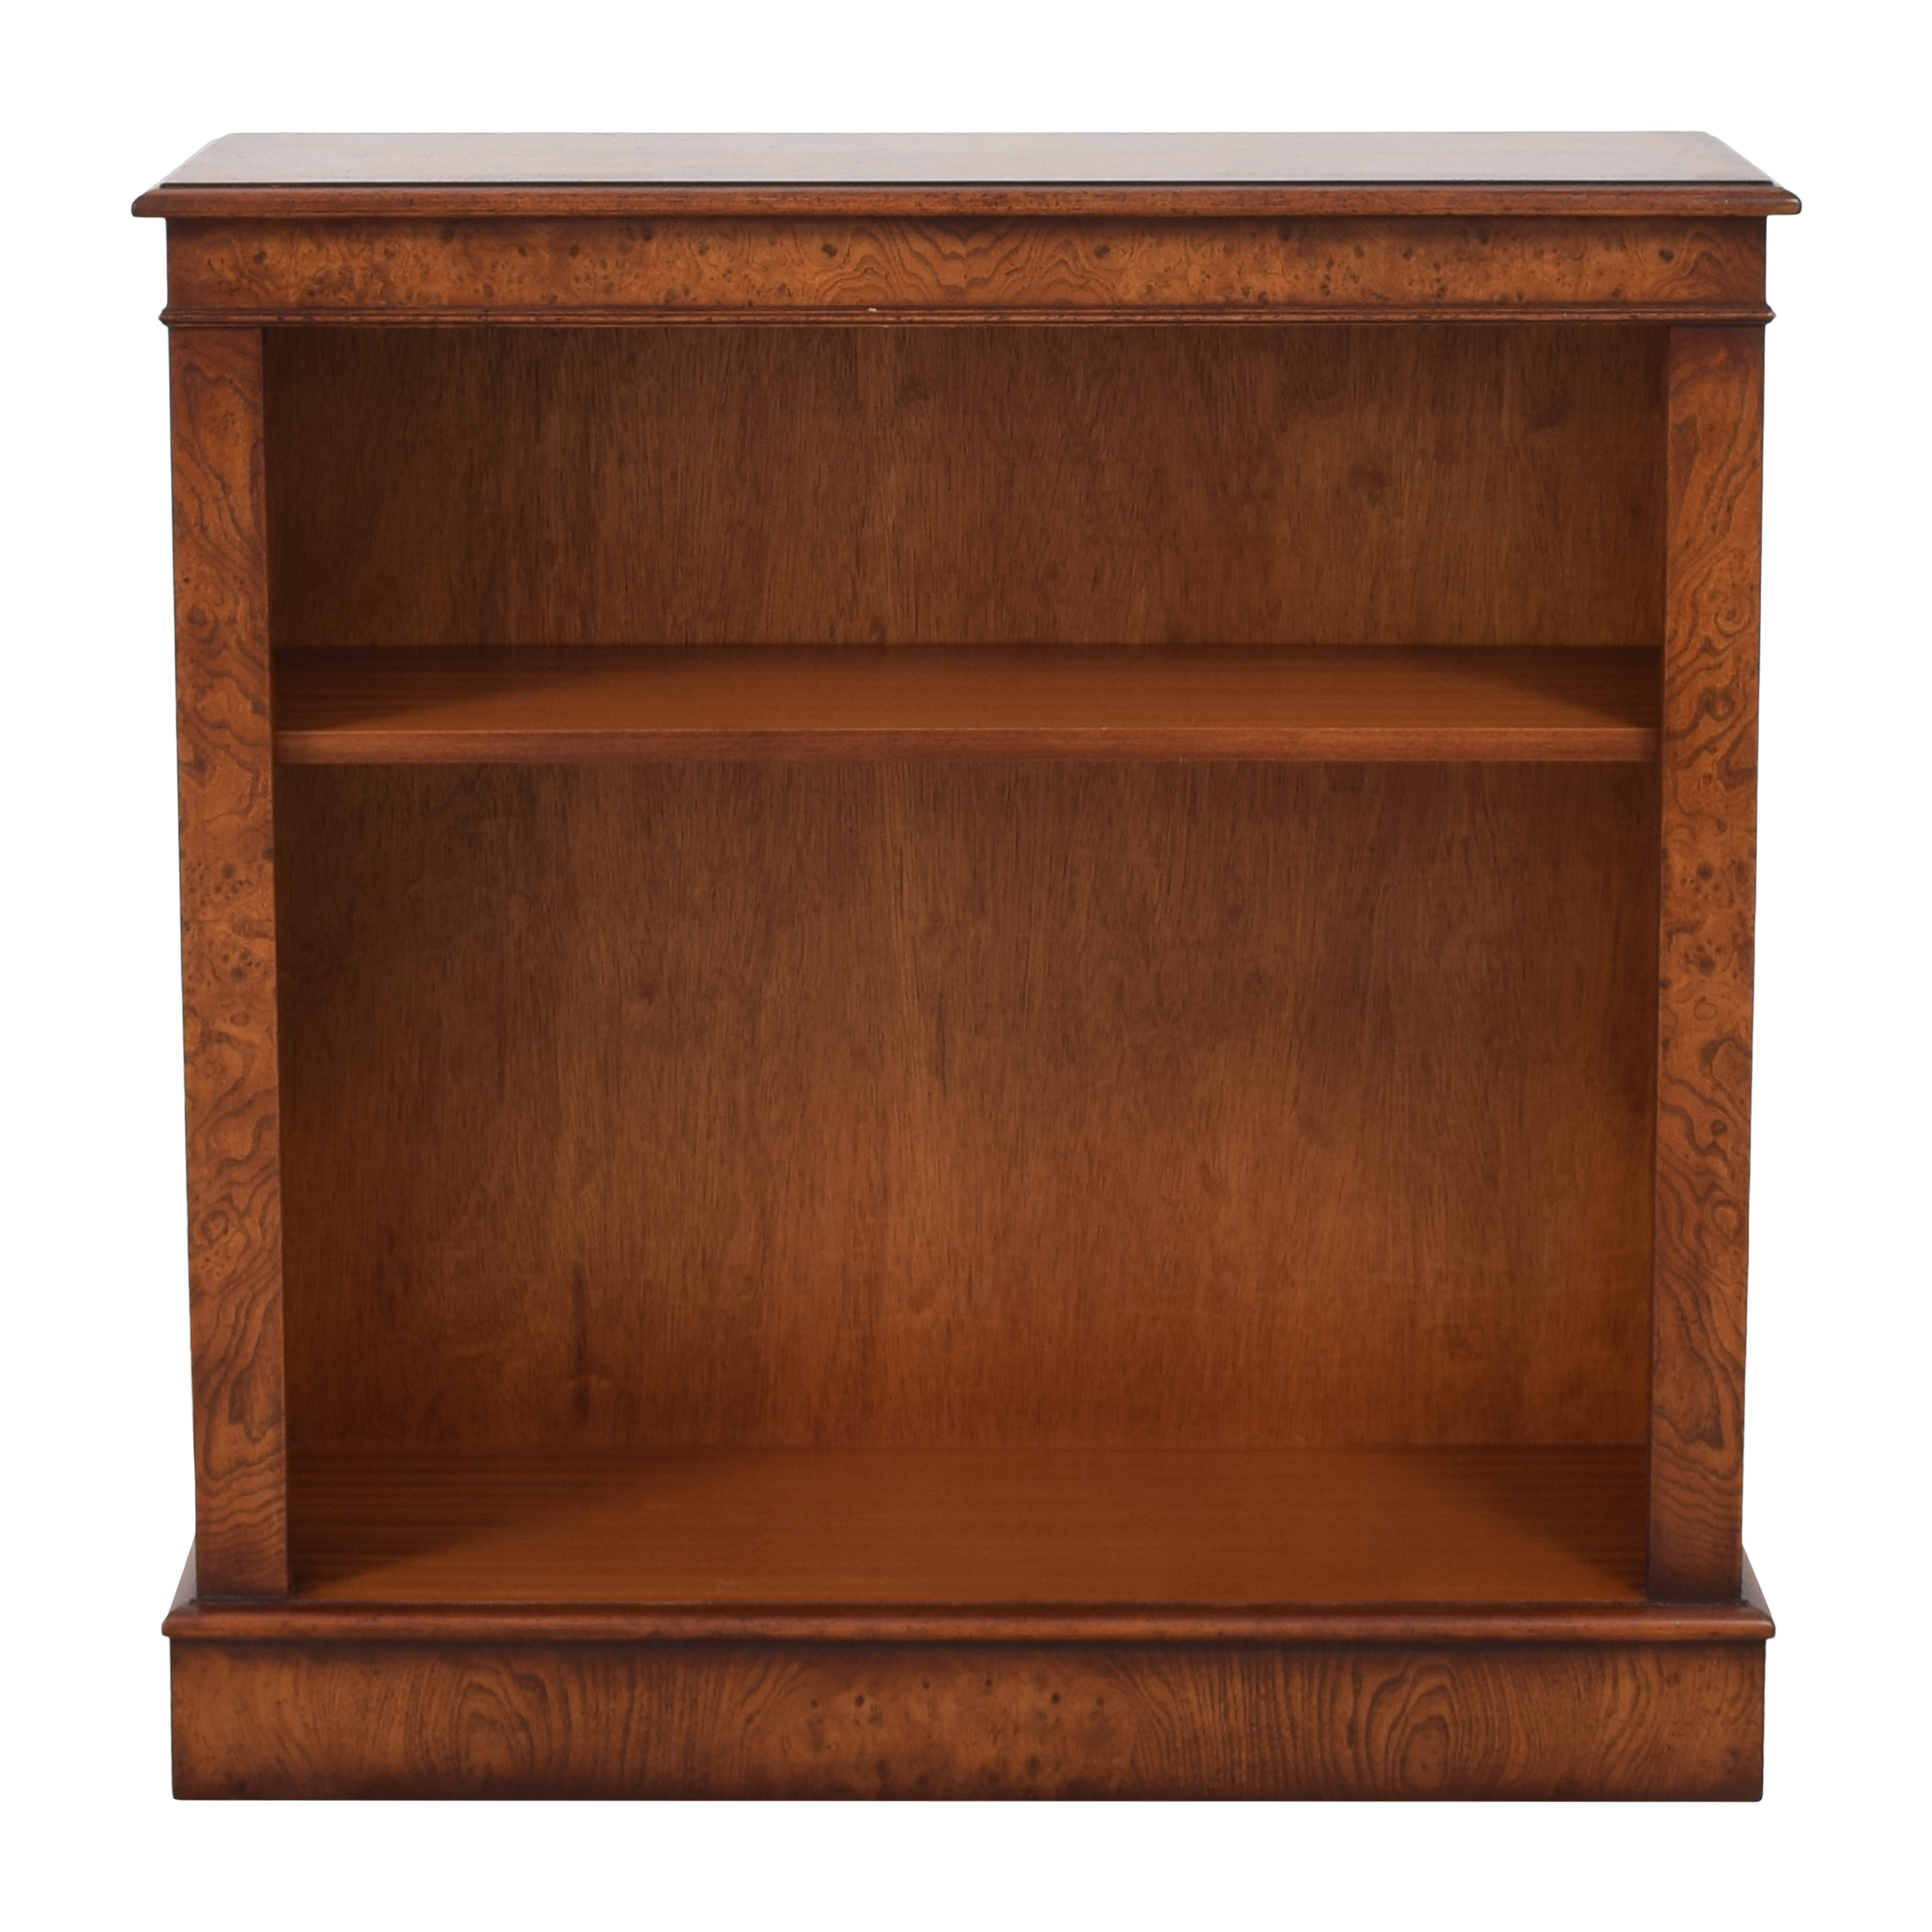 Two Tier Bookcase second hand